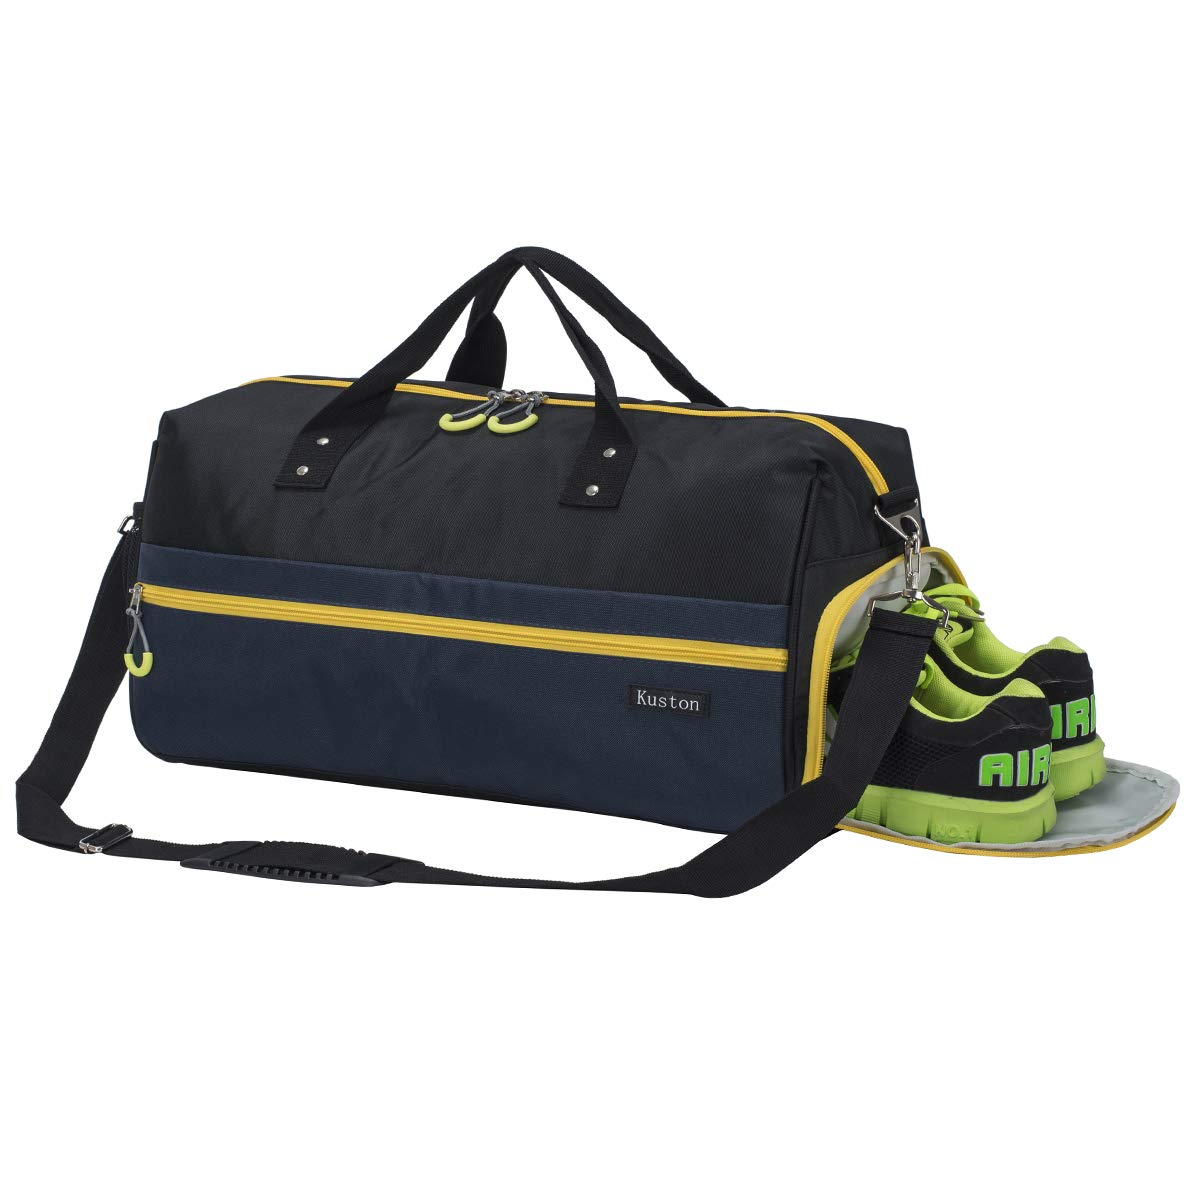 Kuston Sports Gym Bag with Shoes Compartment Travel Duffel Bag for Men and Women (Black Blue)